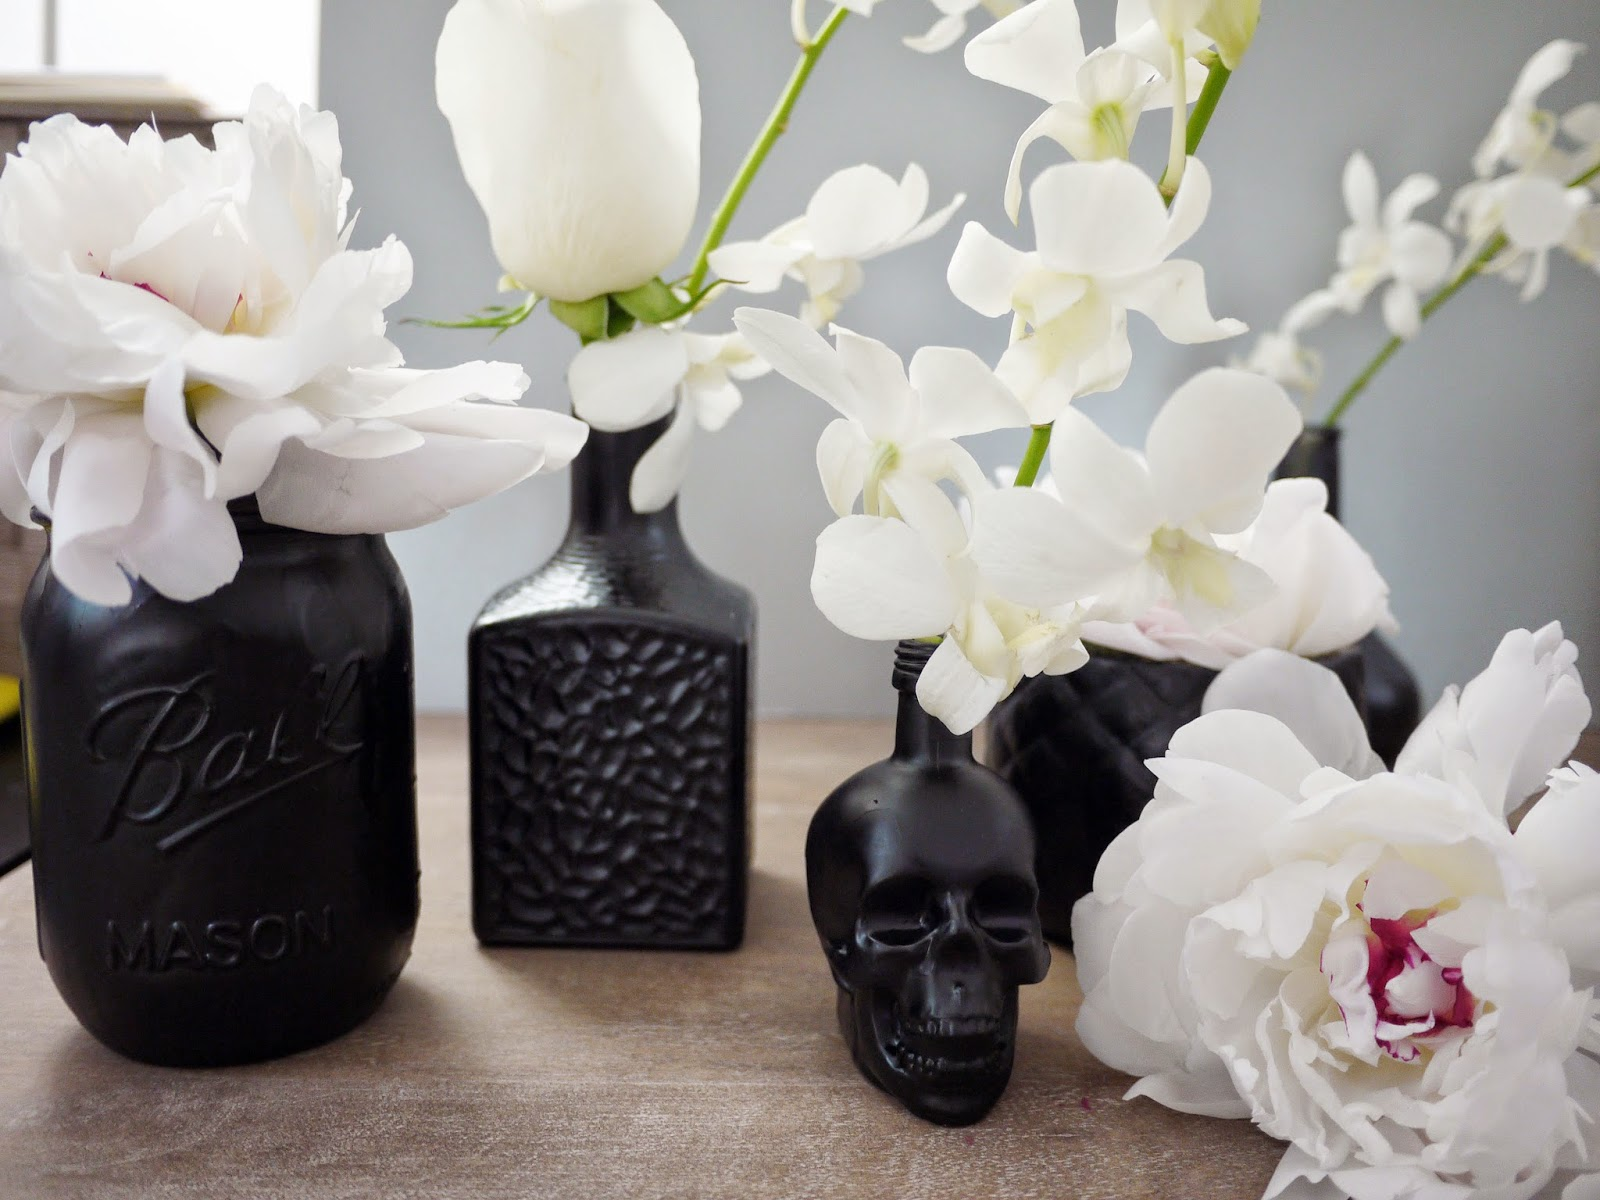 Neato bonito diy black matte vases for this post i was inspired by all the weddings this season lots of diy chic weddings ive attended and have seen on my friends feeds mightylinksfo Image collections